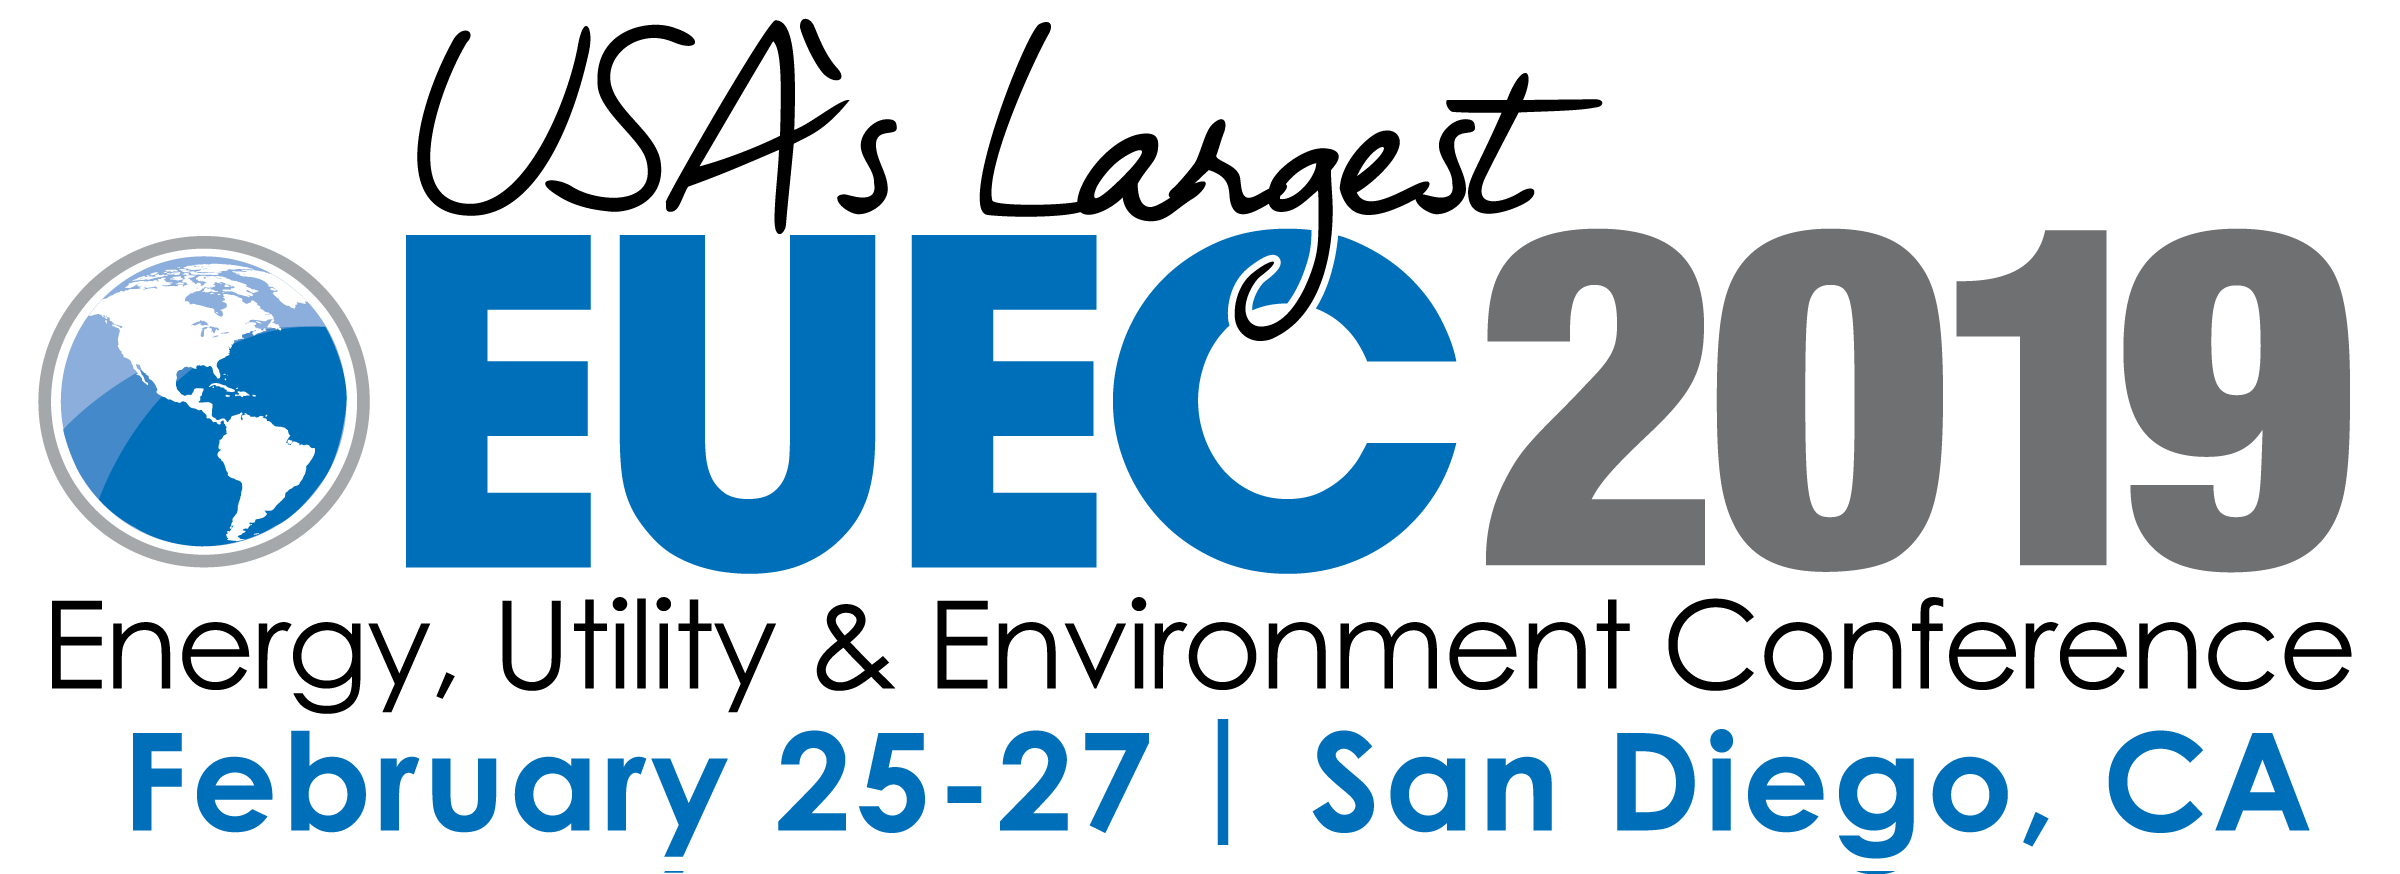 22nd Annual Energy, Utility & Environment Conference: EUEC 2019